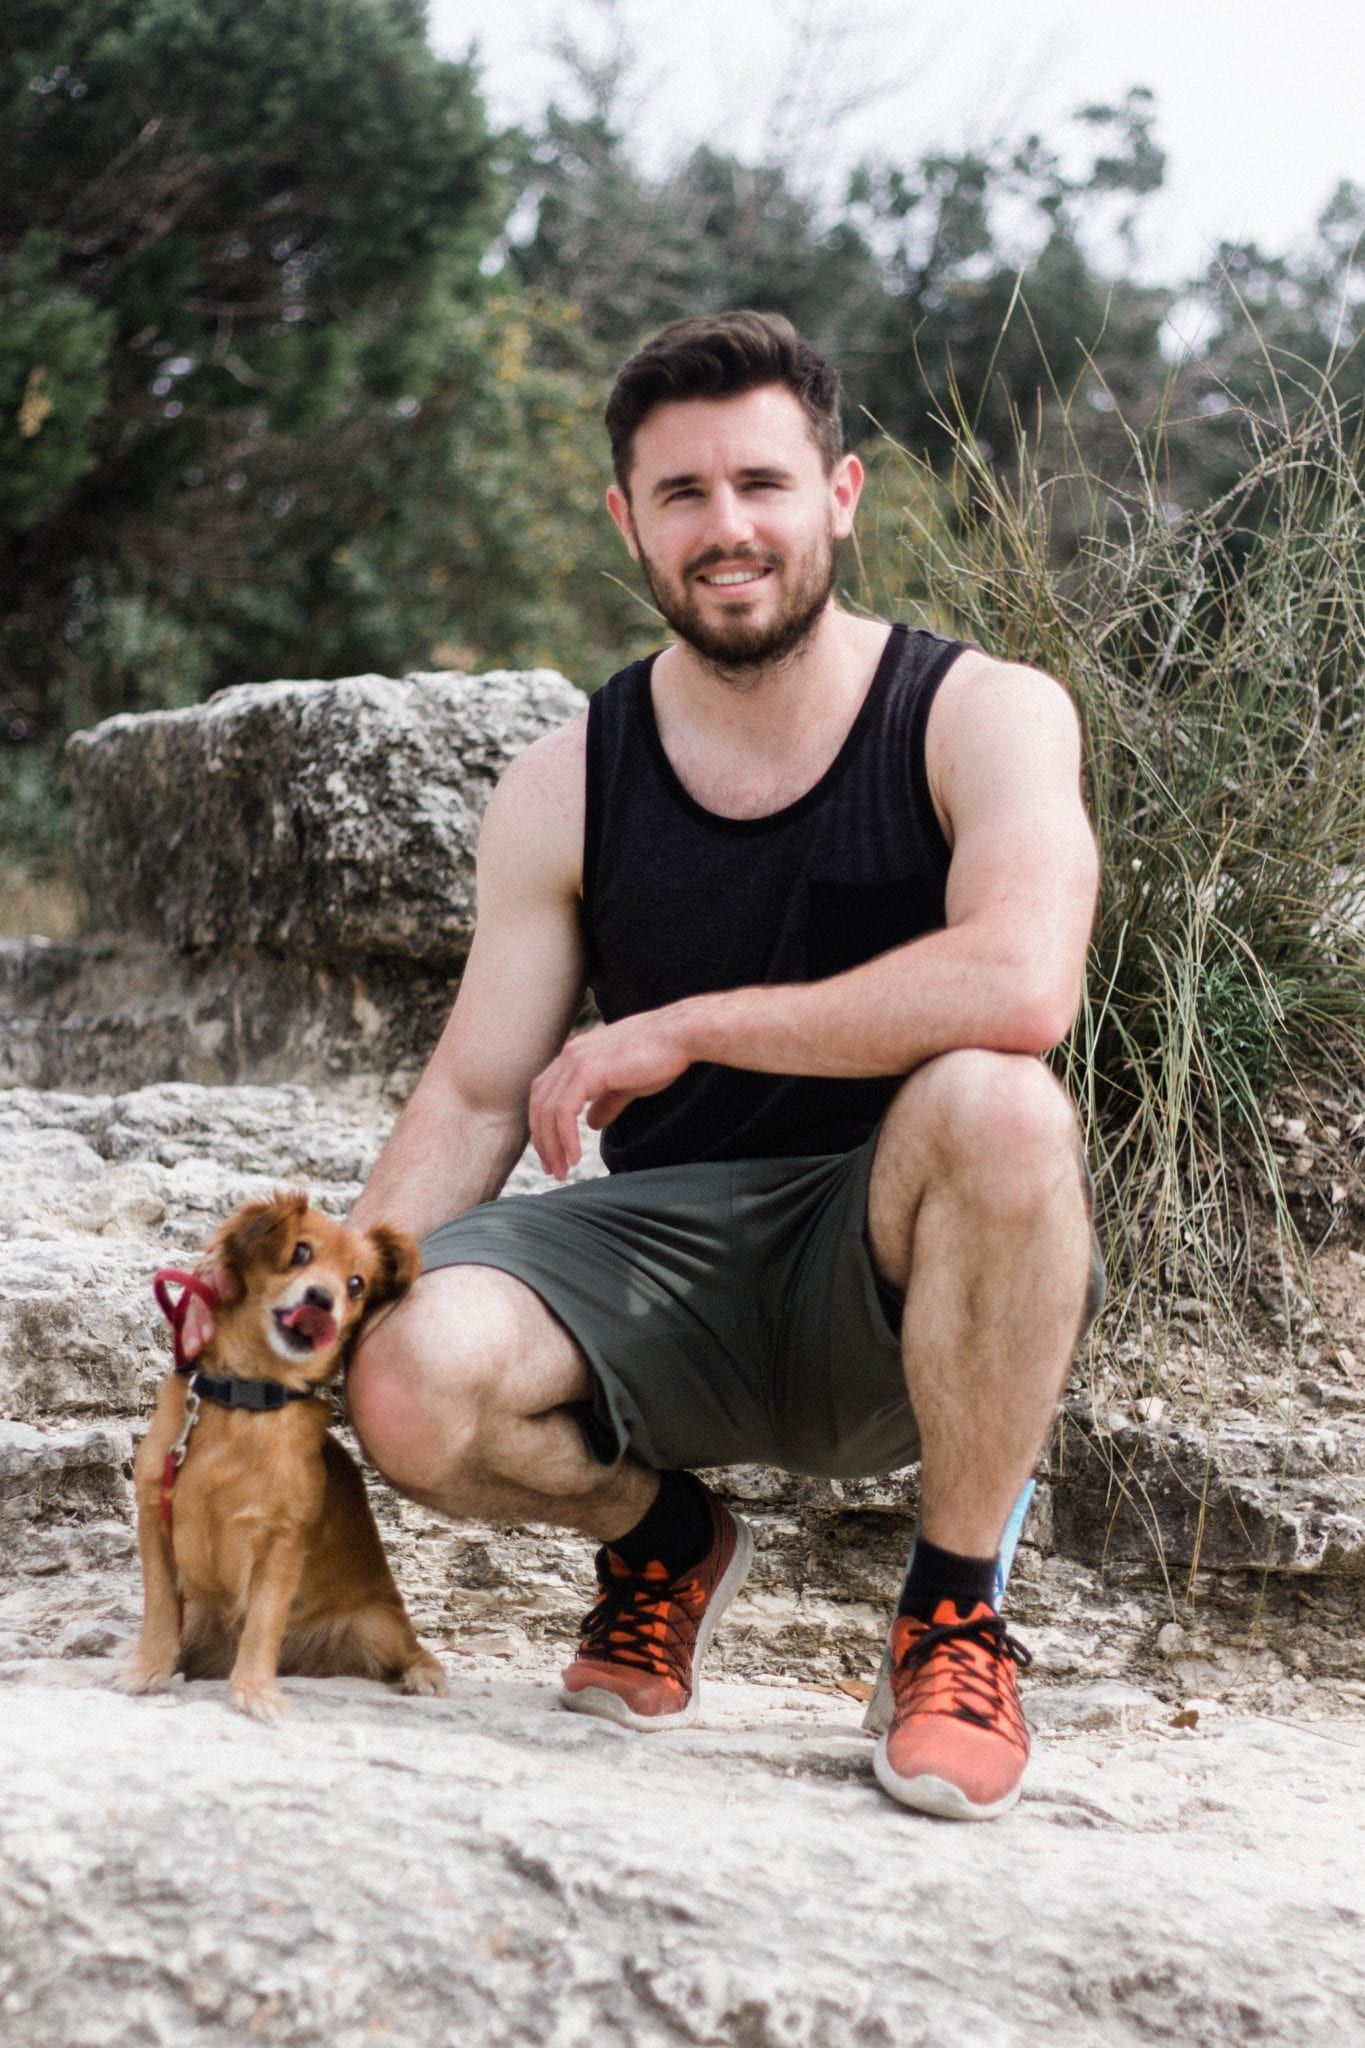 Man and small dog on Mt. Bonnell in Austin Texas